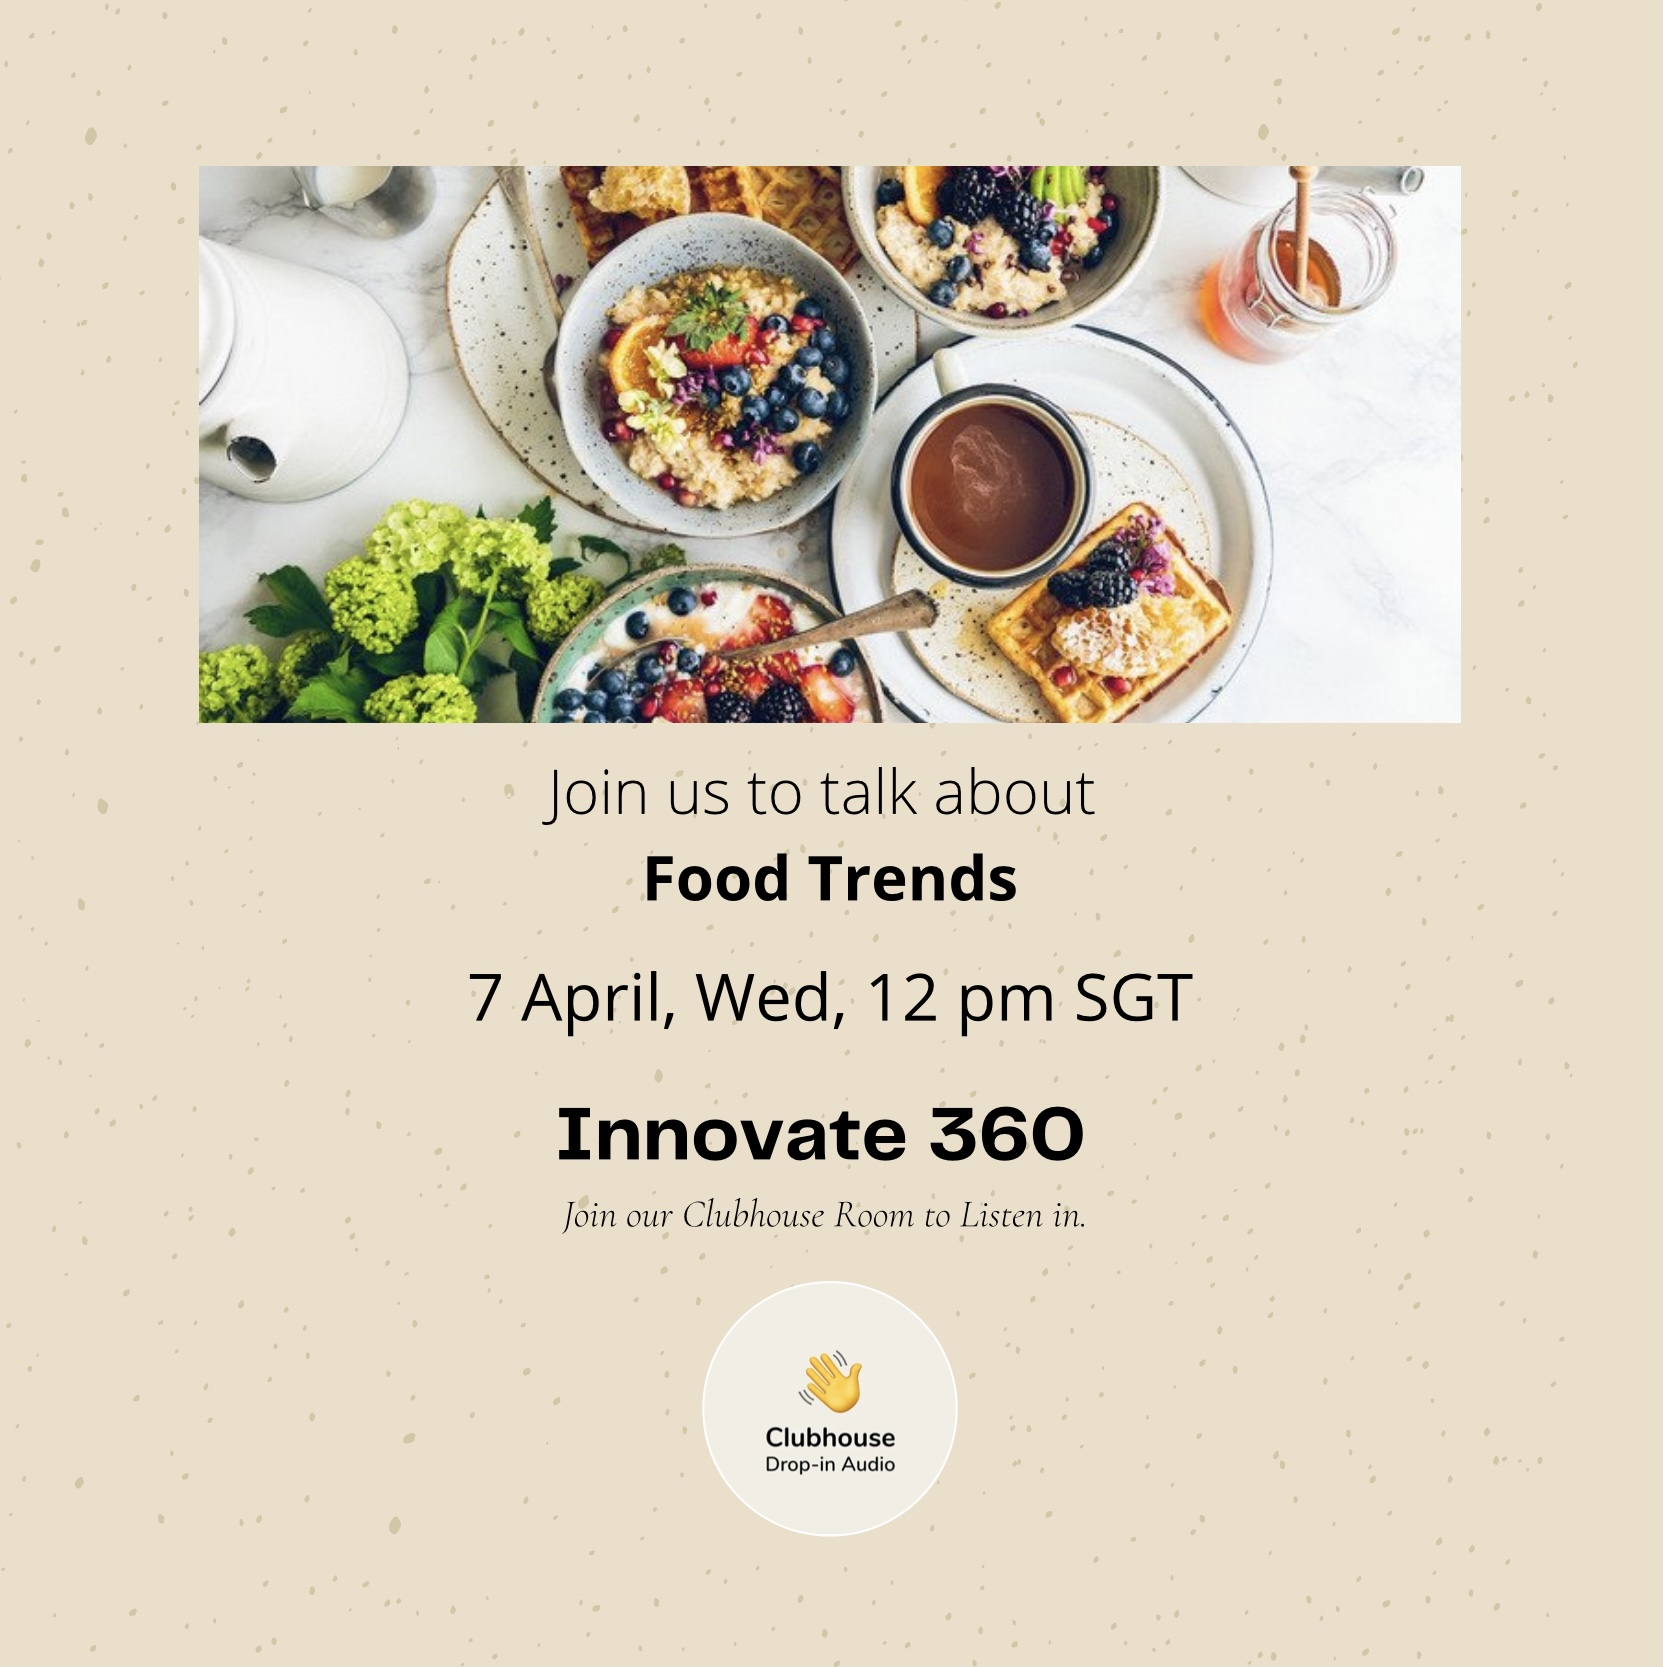 Learn about Food Trends